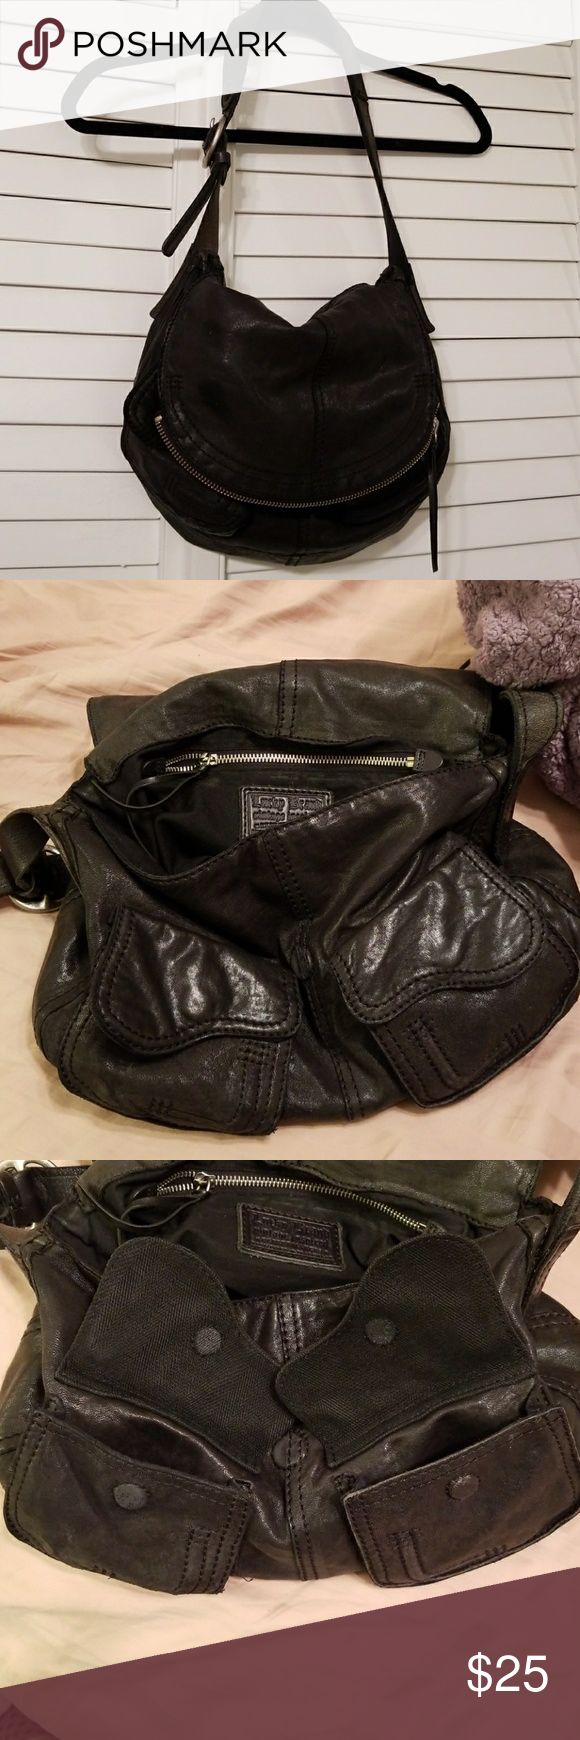 Lucky Brand purse Good and barely used condition. Lucky Brand Bags